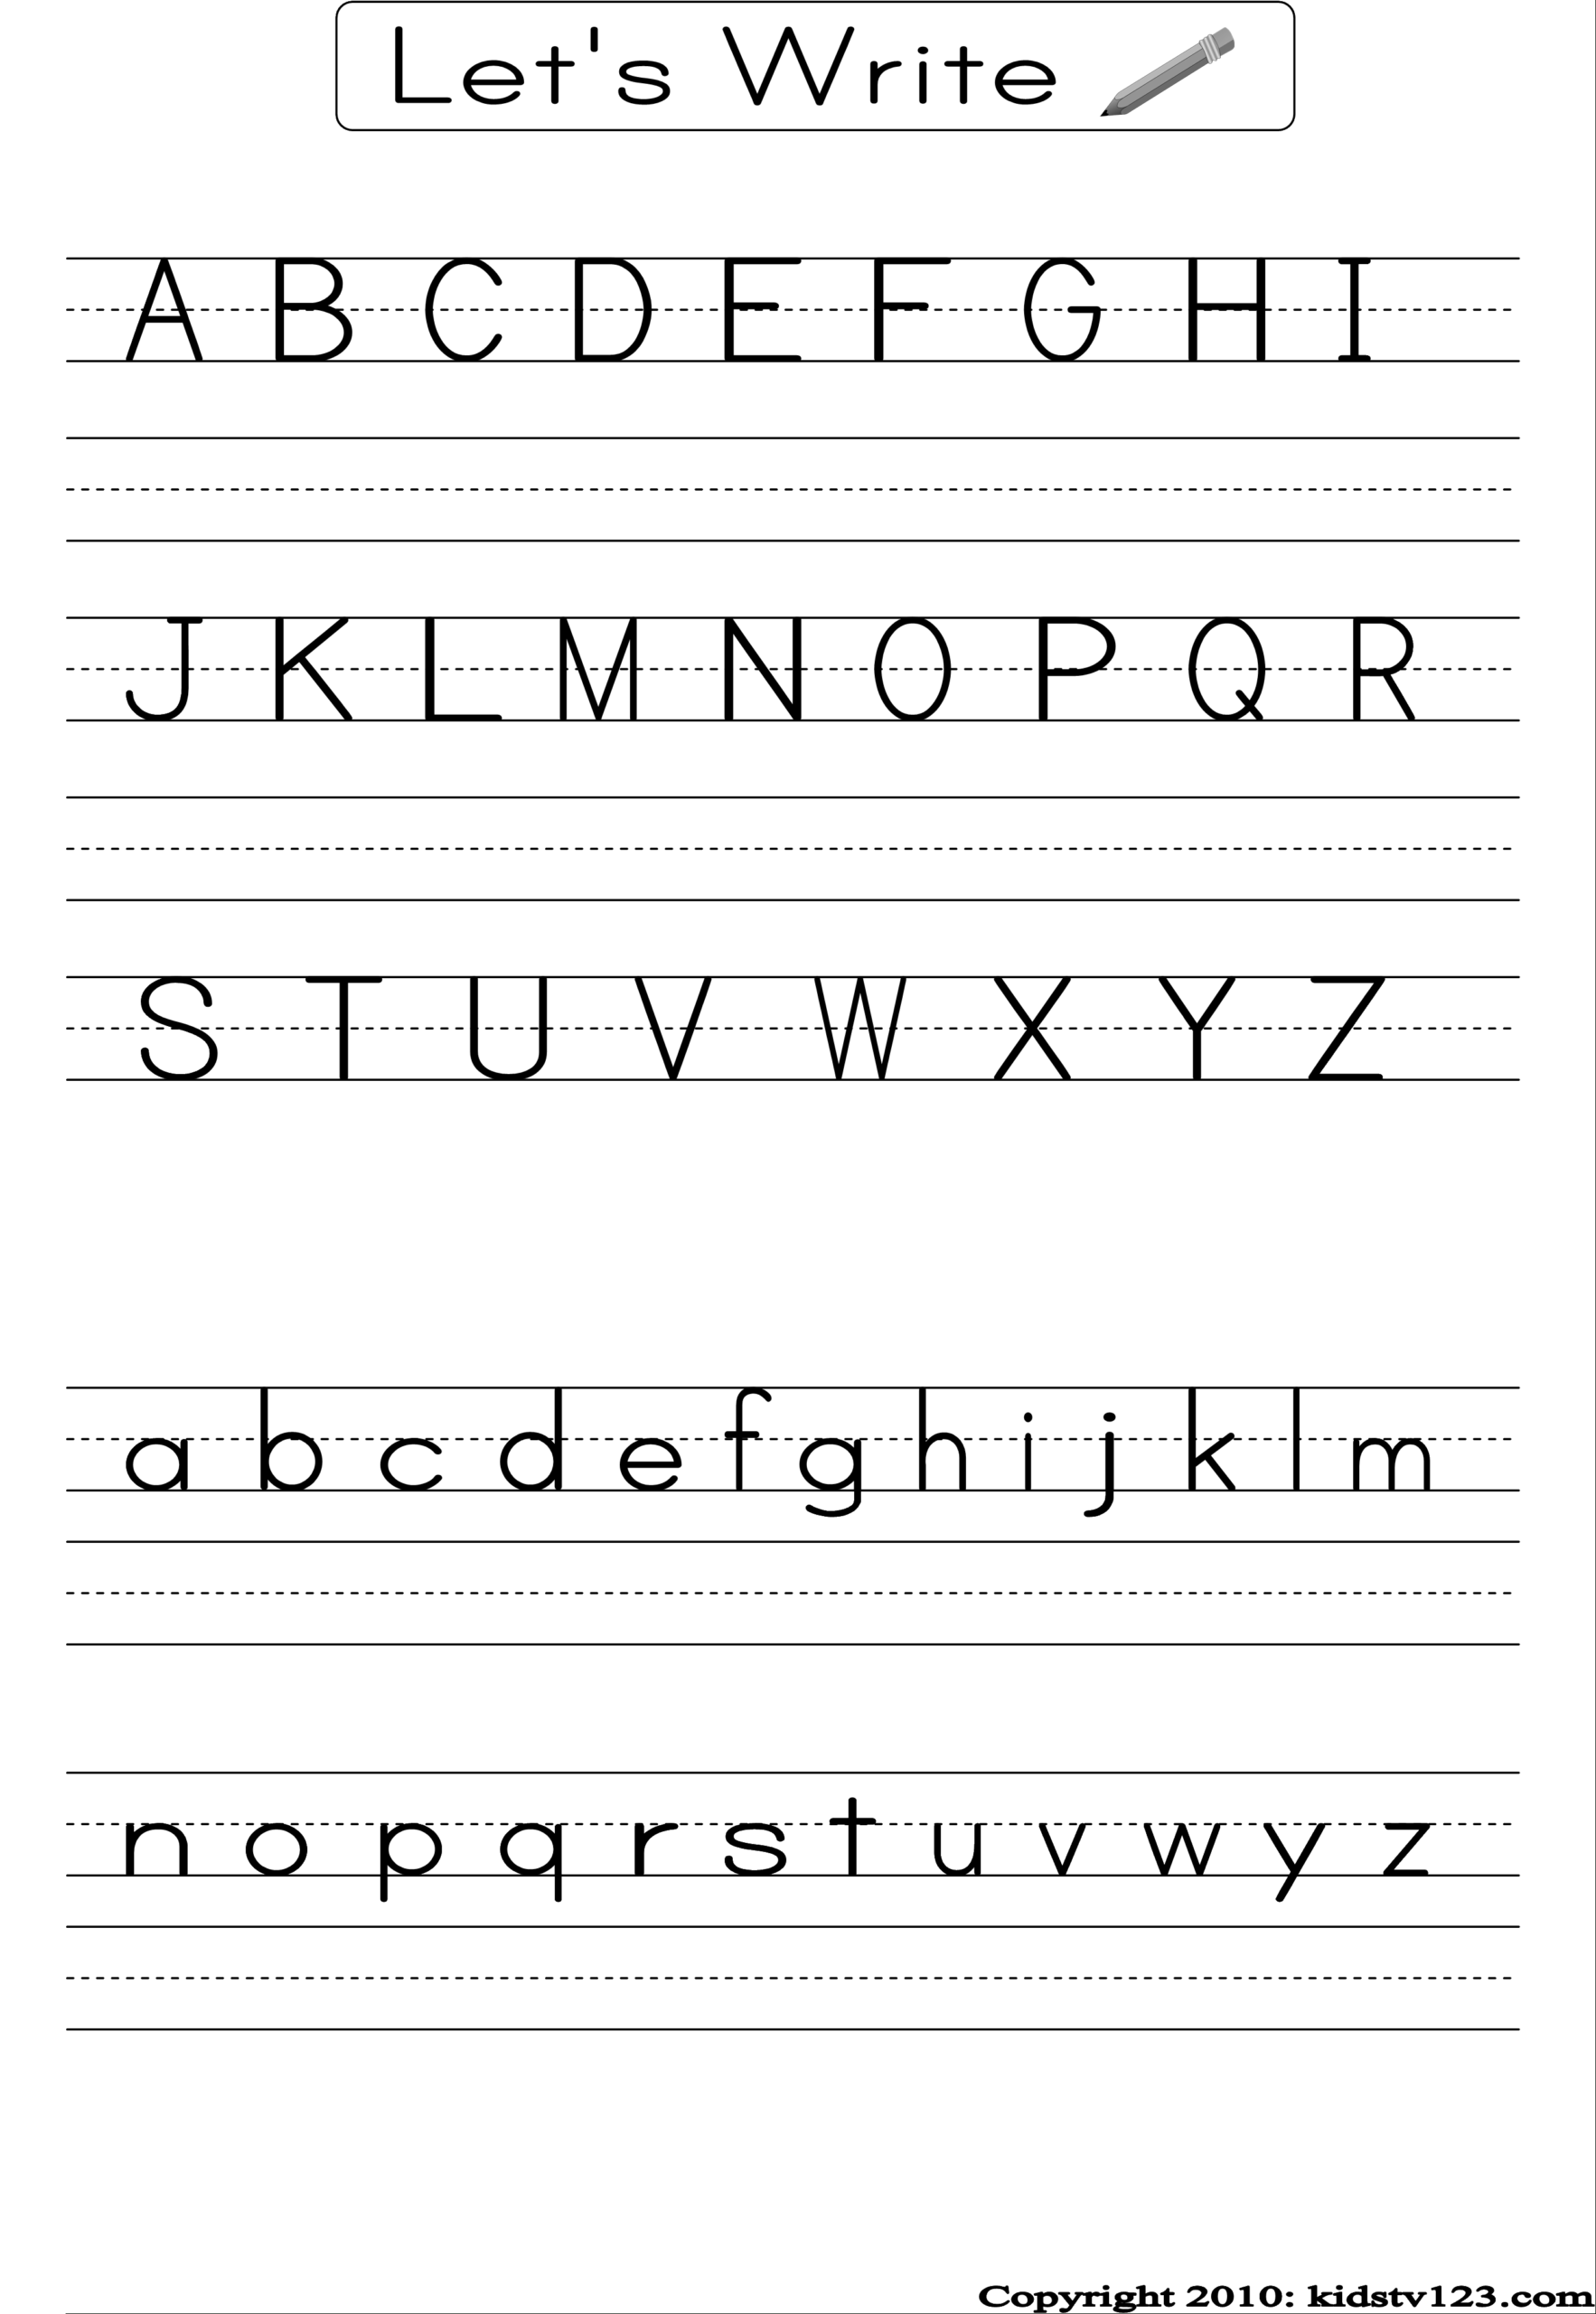 Alphabet Writing Practice Sheet | Alphabet Writing Practice intended for Alphabet I Worksheets For Kindergarten